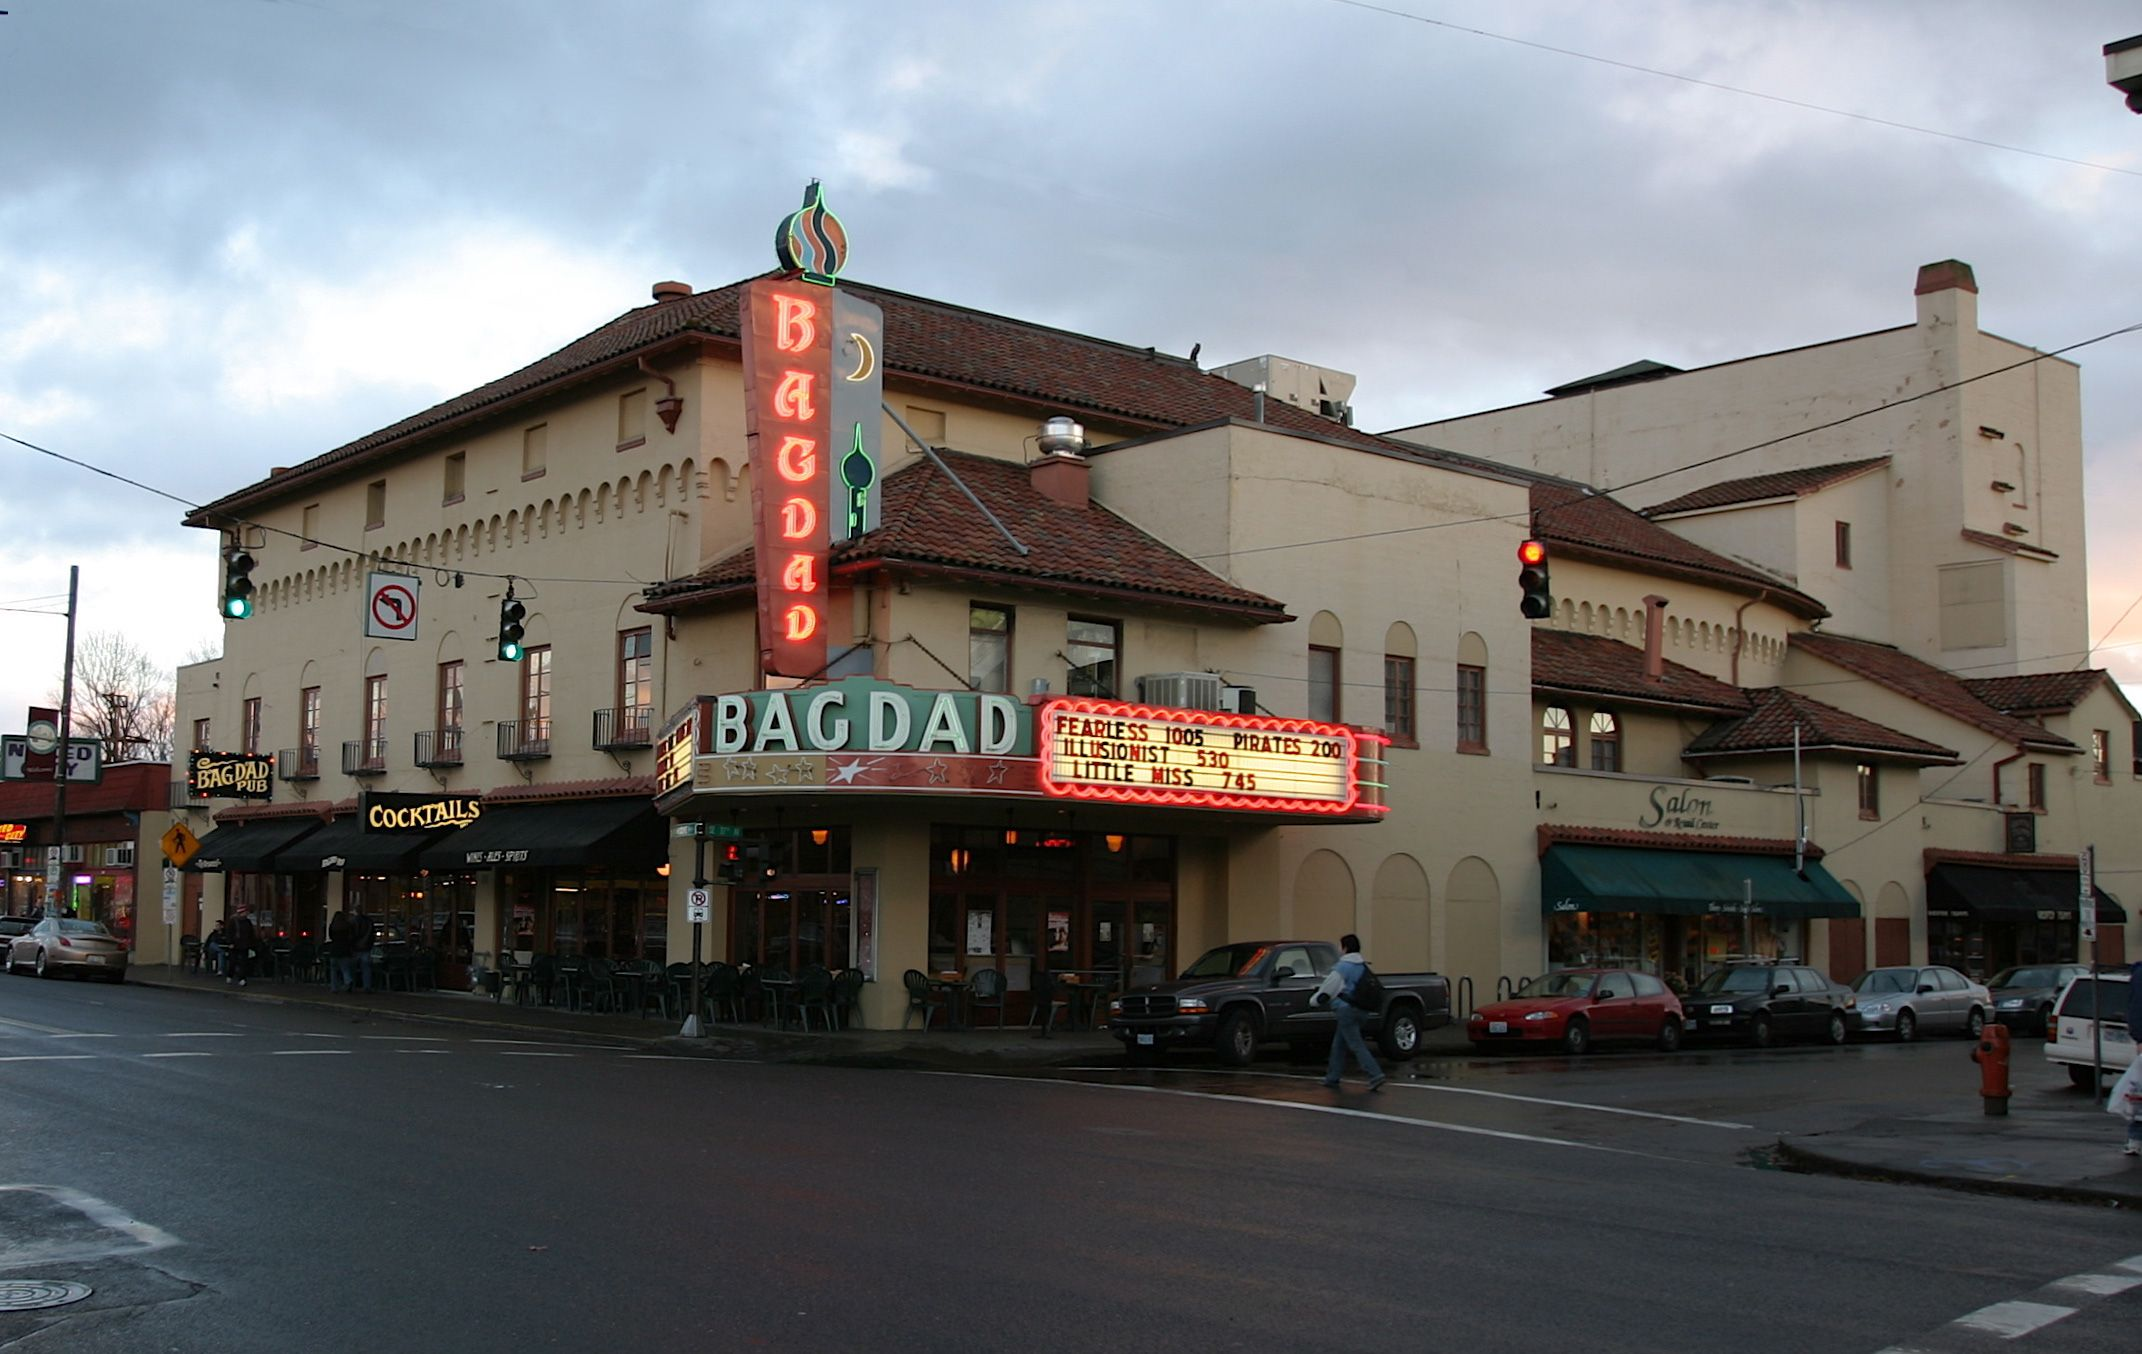 Exceptional The Bagdad! Great Place To Watch A Show And Have A Beer! Portland Oregon